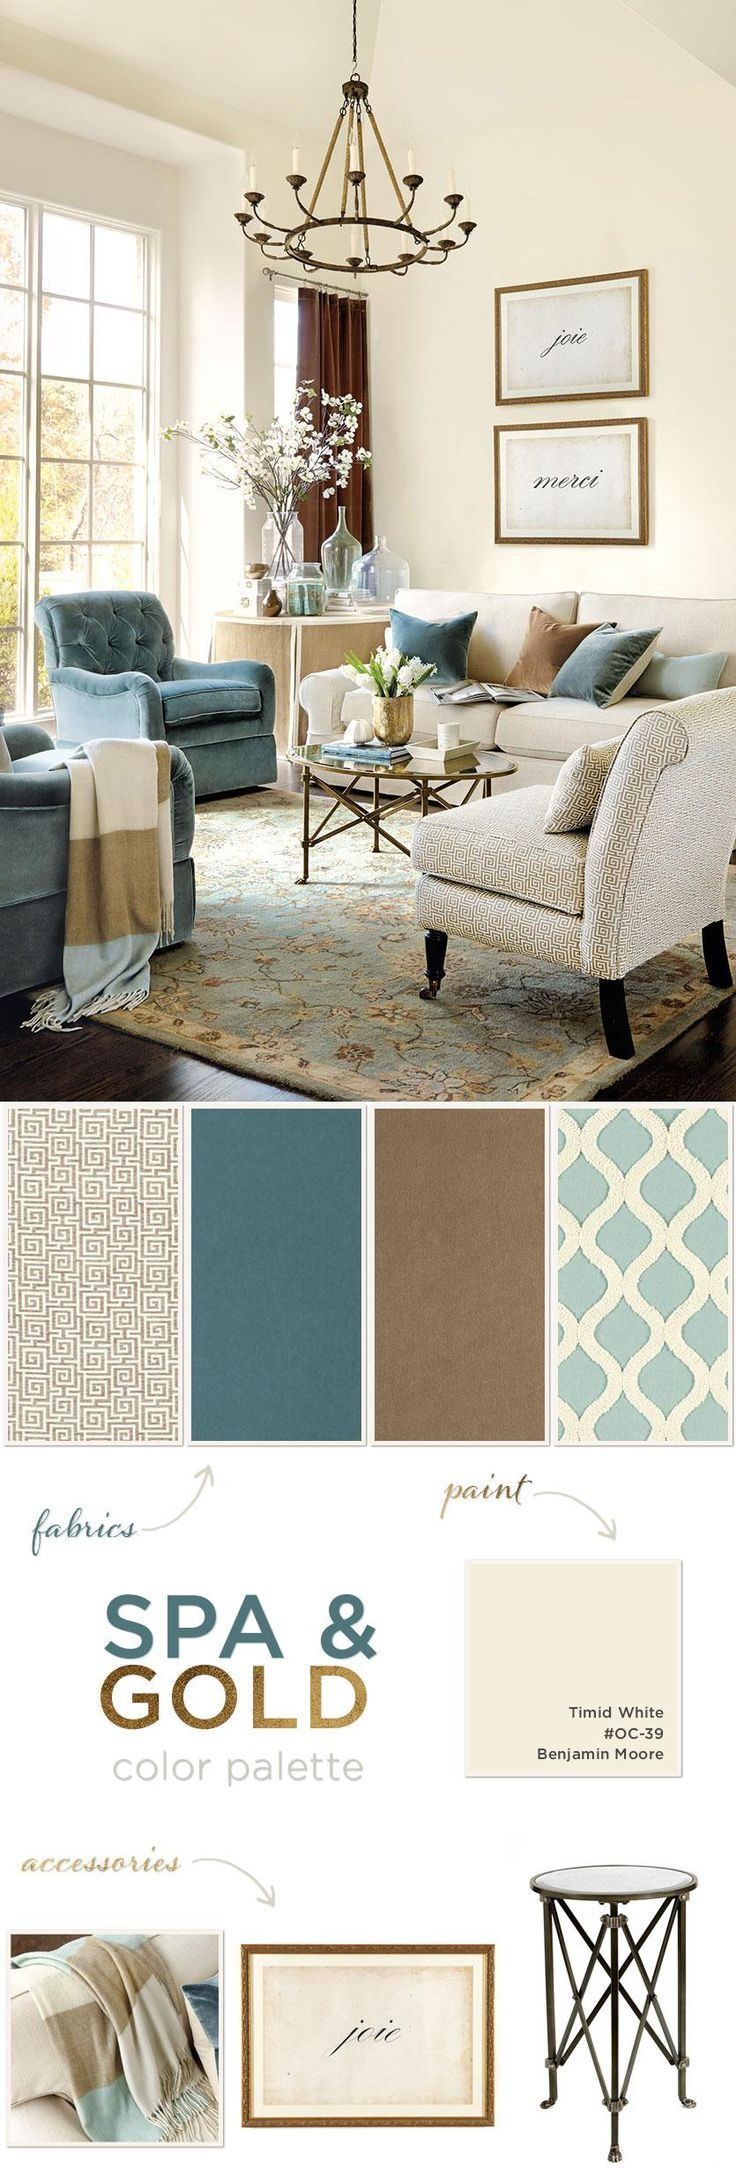 Best 25 family room colors ideas only on pinterest - Living room furniture color combinations ...